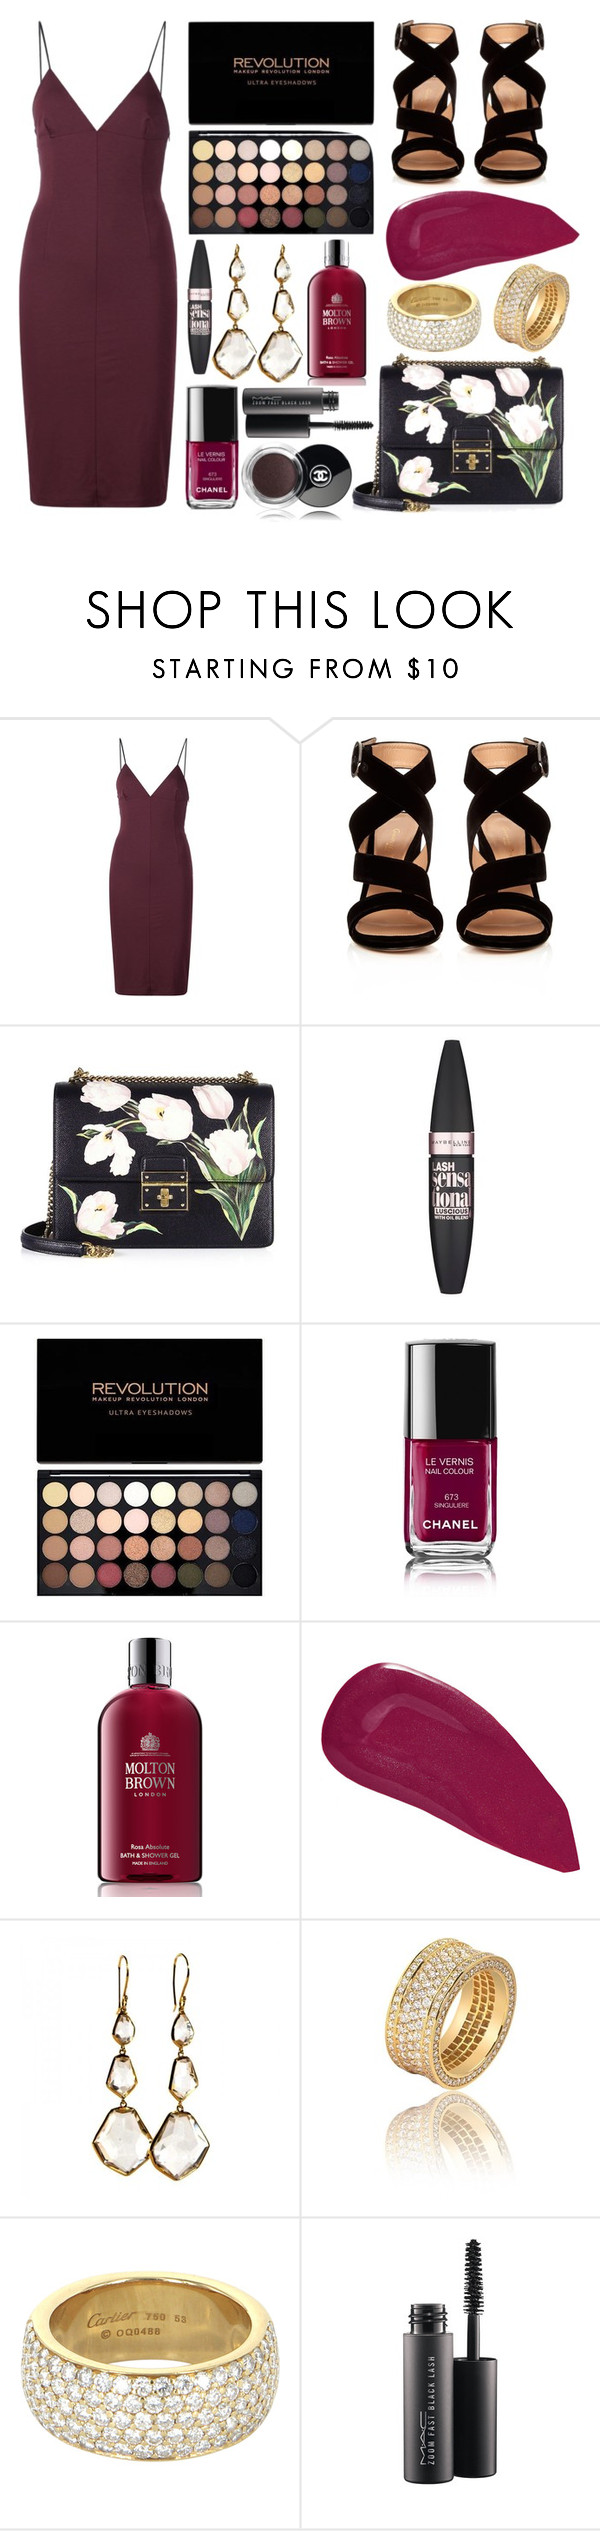 """Rosalia"" by lauren200067 ❤ liked on Polyvore featuring T By Alexander Wang, Gianvito Rossi, Dolce&Gabbana, Maybelline, Chanel, Molton Brown, Christian Louboutin, Ippolita, Cartier and MAC Cosmetics"